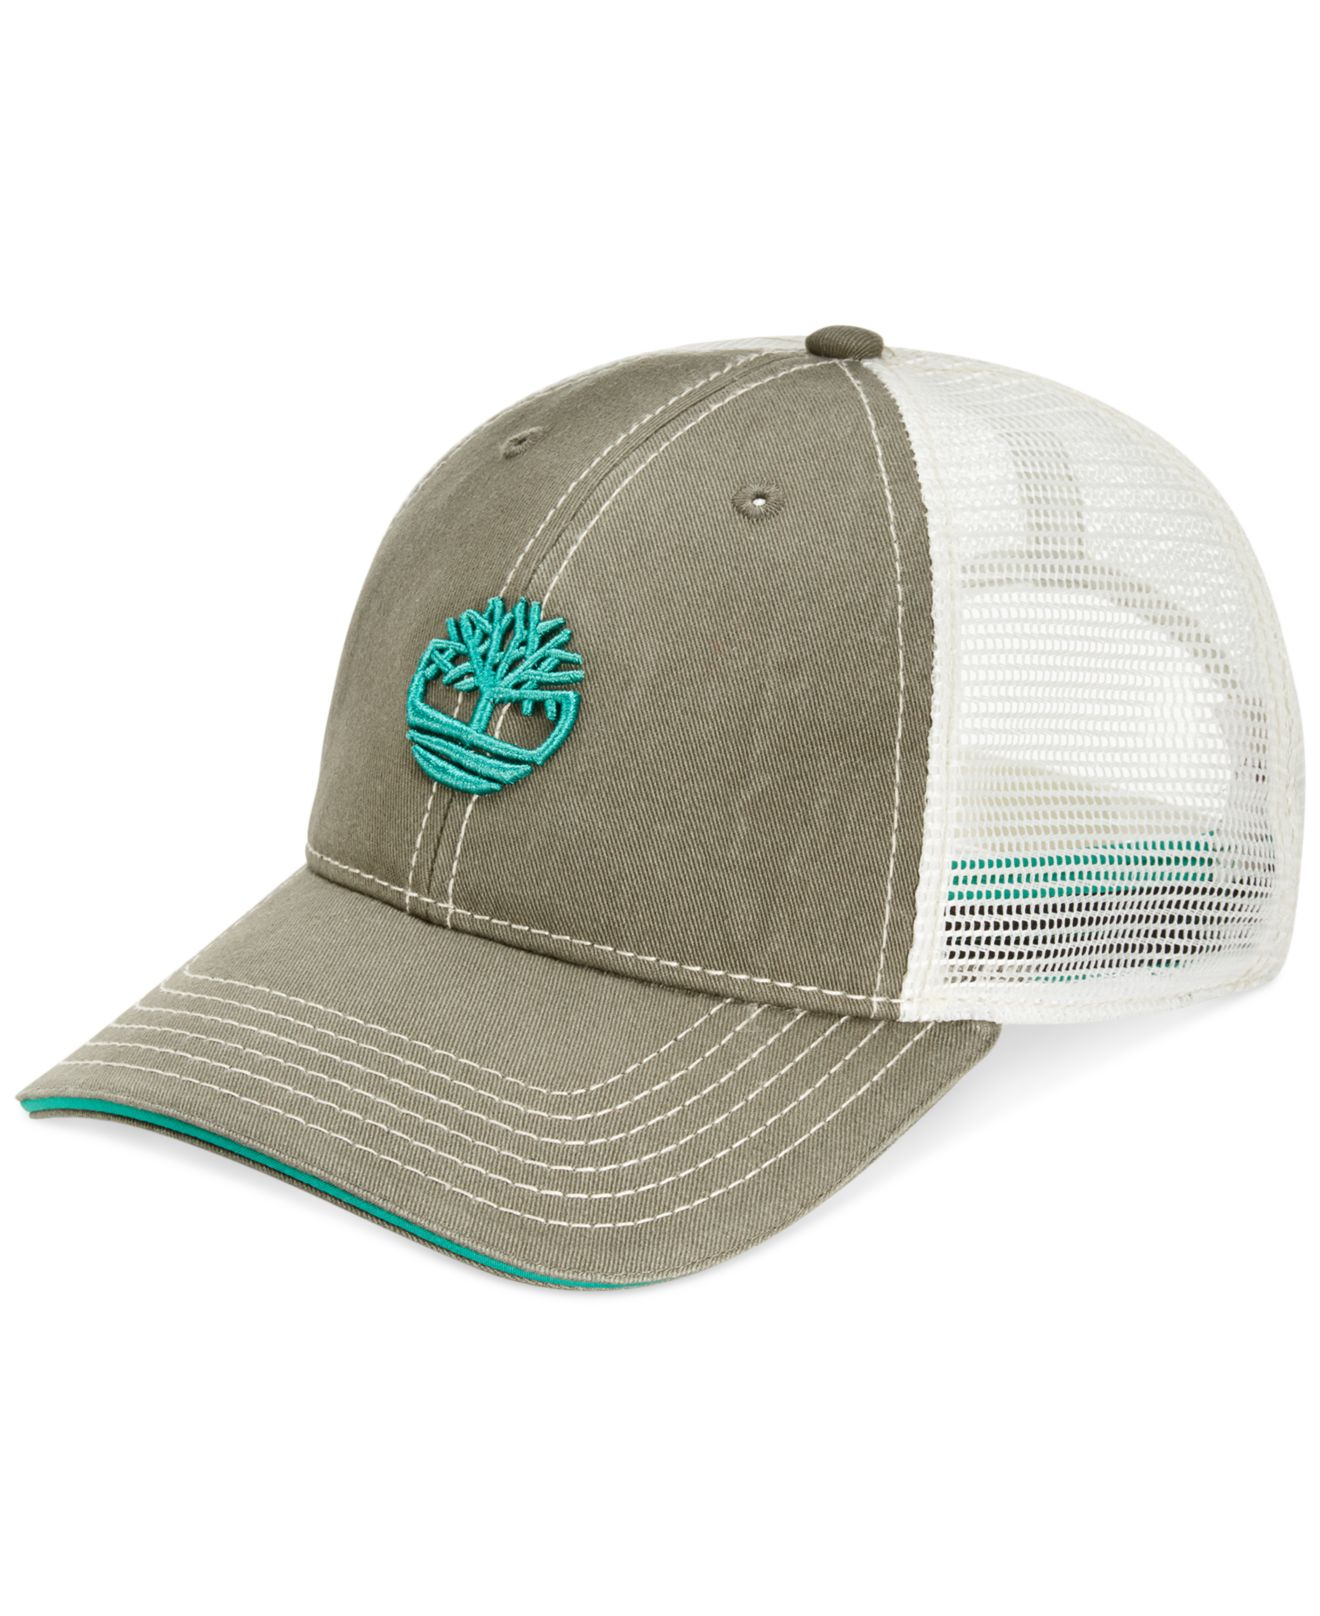 caee4d3846b Lyst - Timberland Cotton Twill Trucker Hat in Green for Men